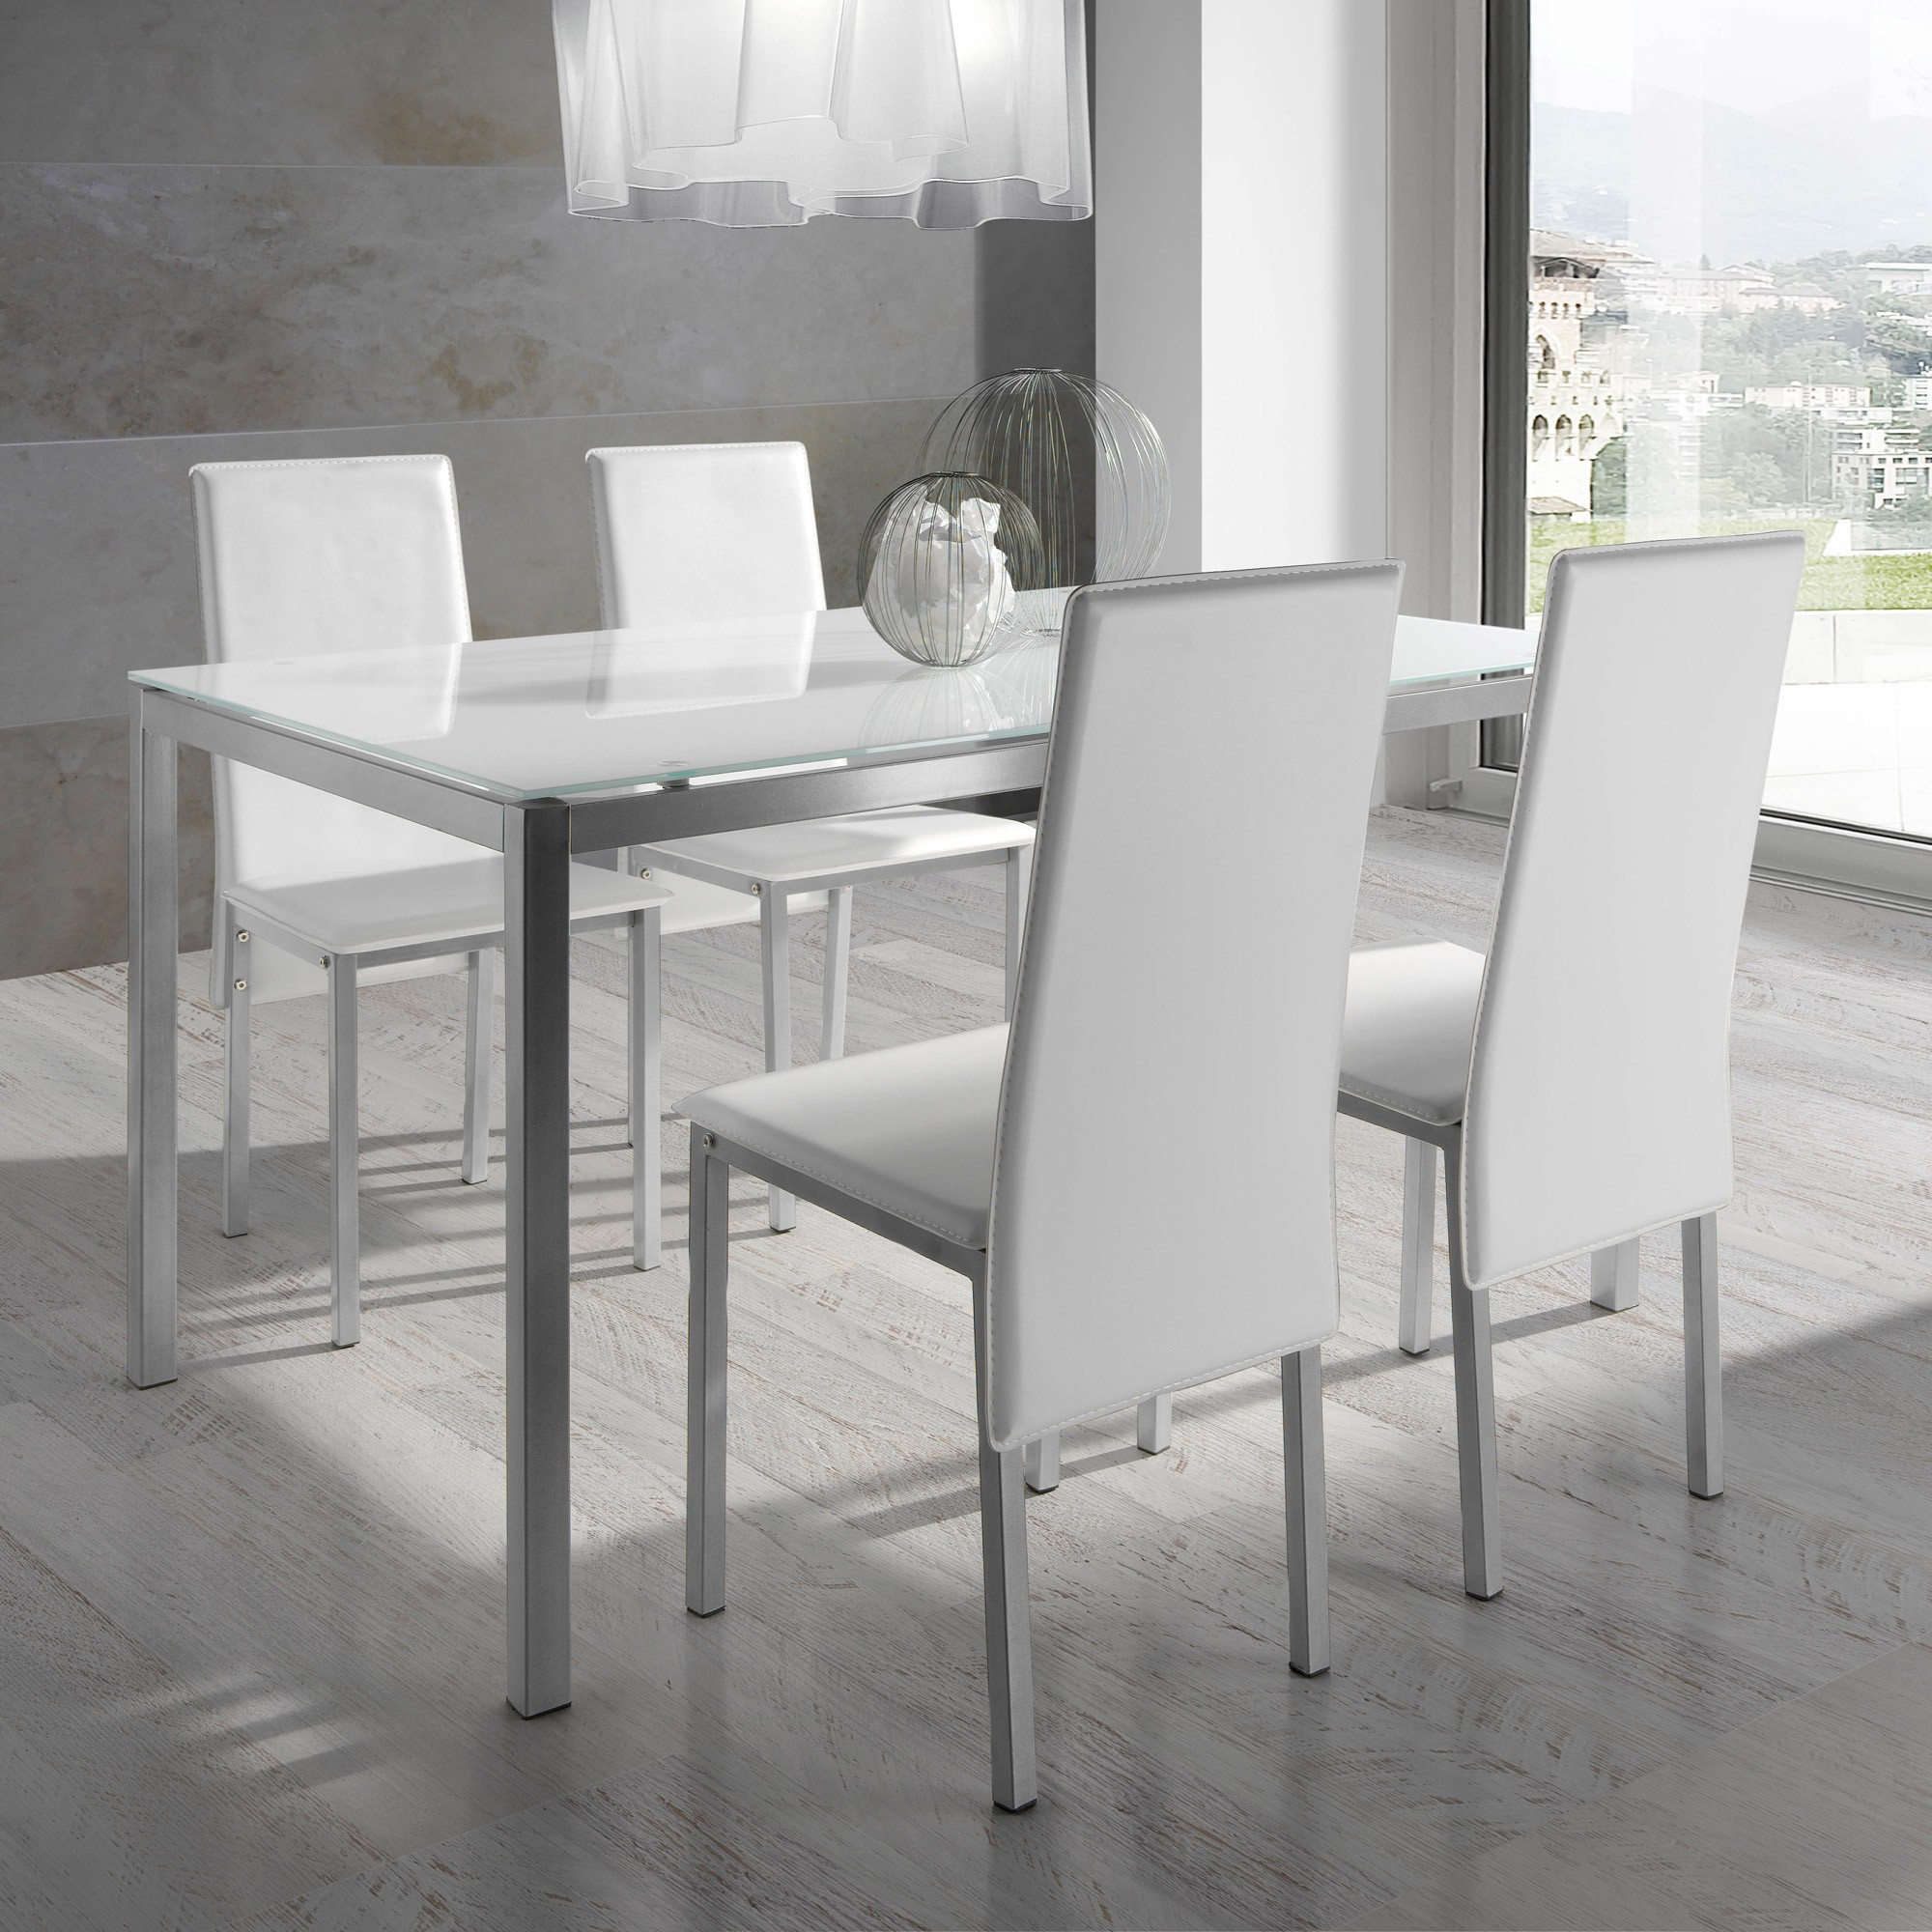 Ensemble table et chaise salle a manger but chaise Ensemble table et 6 chaise salle a manger